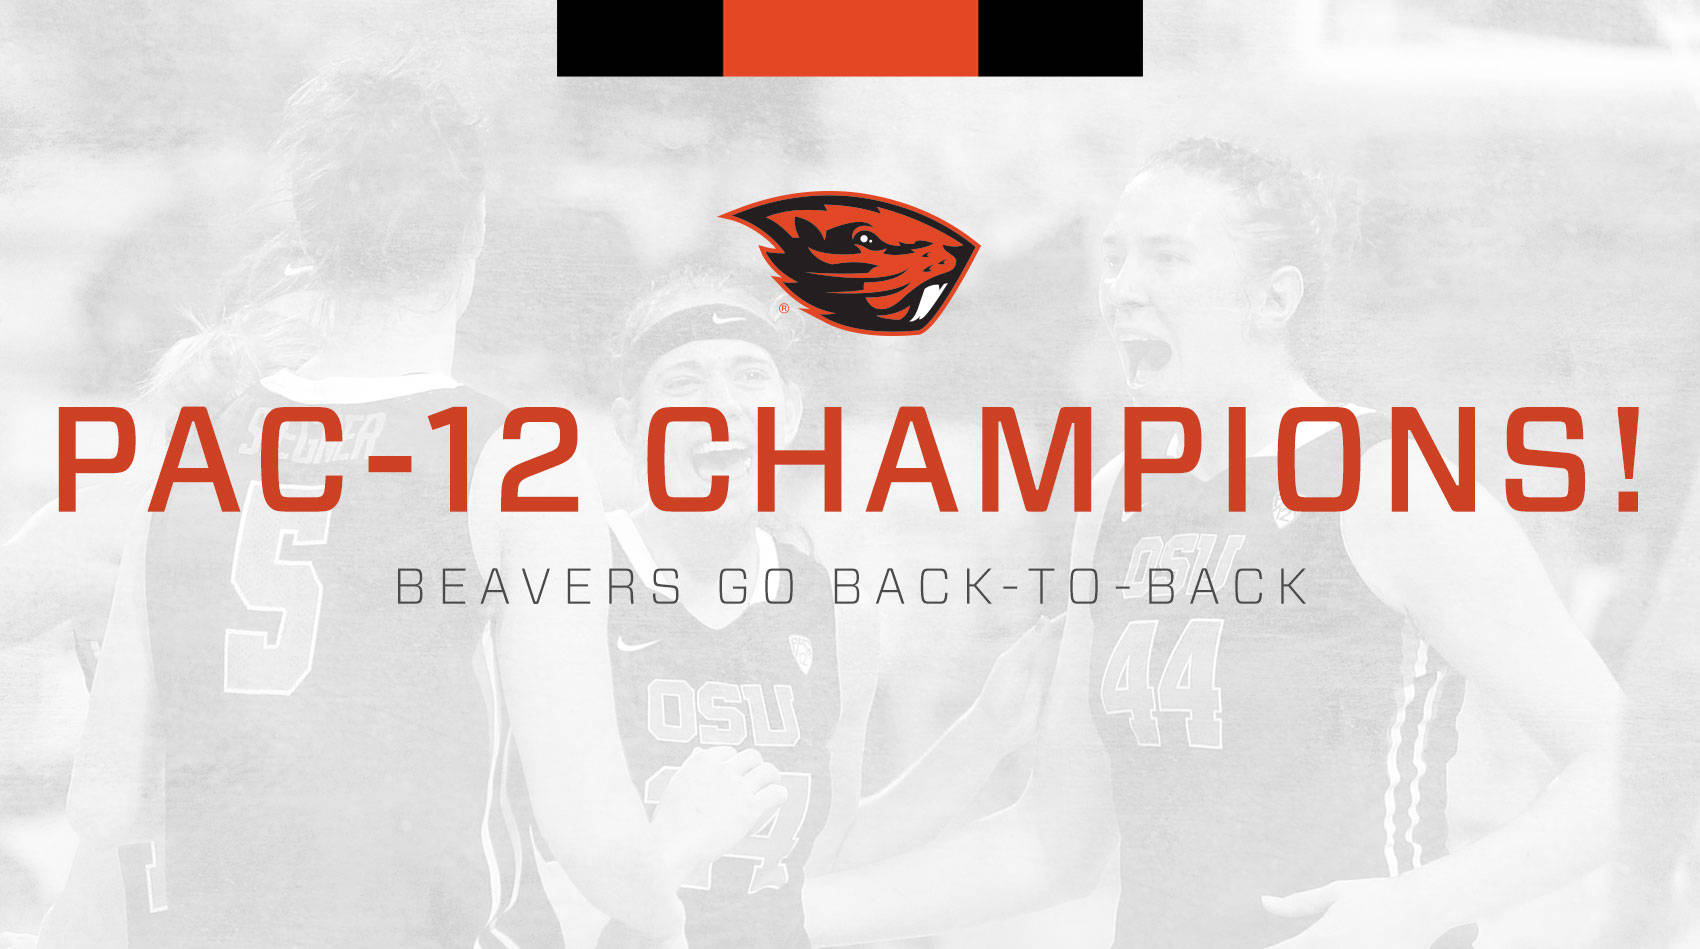 pac-12 champs graphic